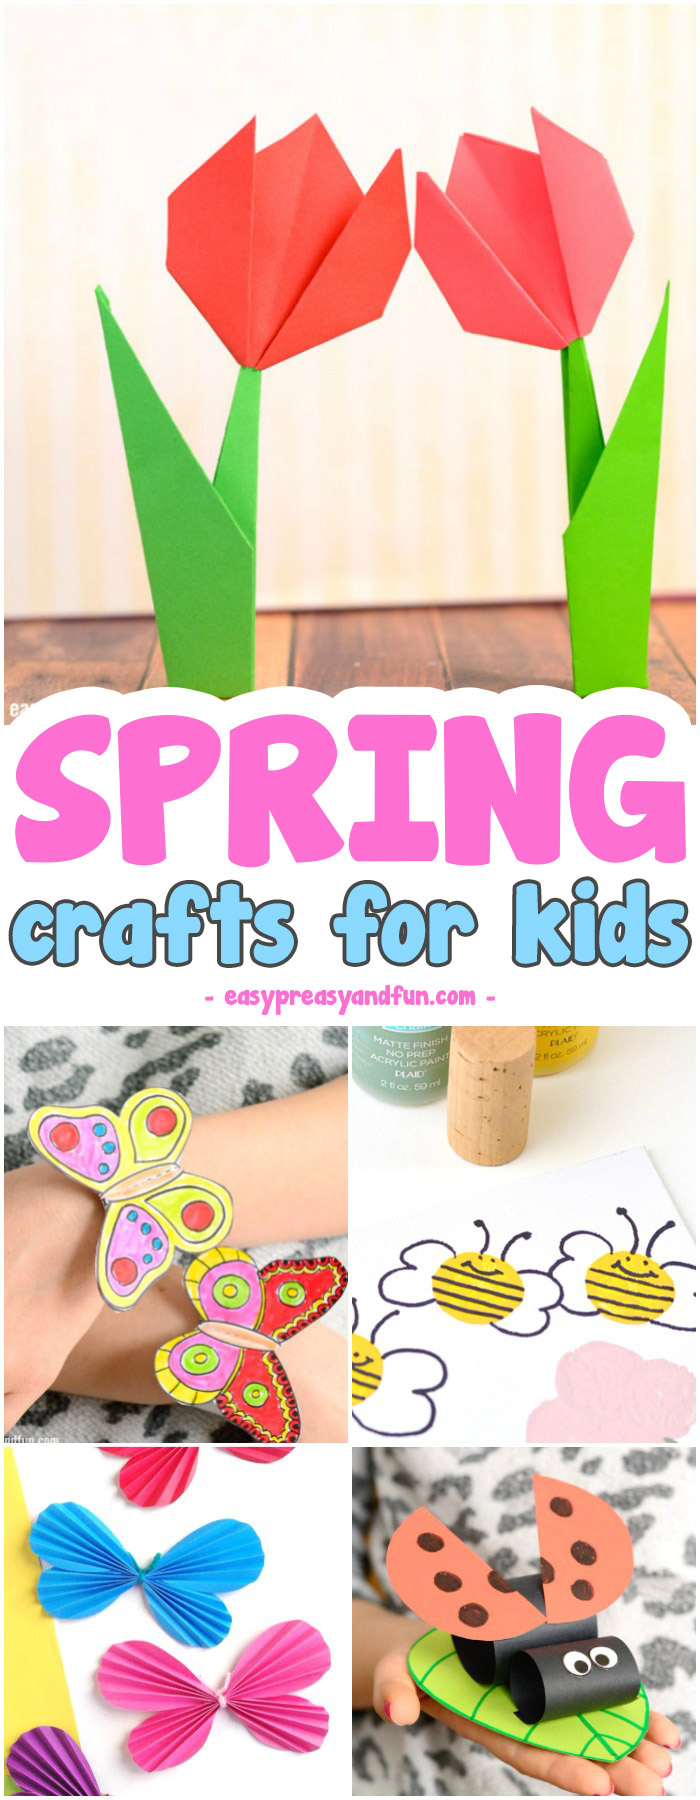 picture relating to Printable Crafts for Kids identify Spring Crafts for Little ones - Artwork and Craft Undertaking Suggestions for All